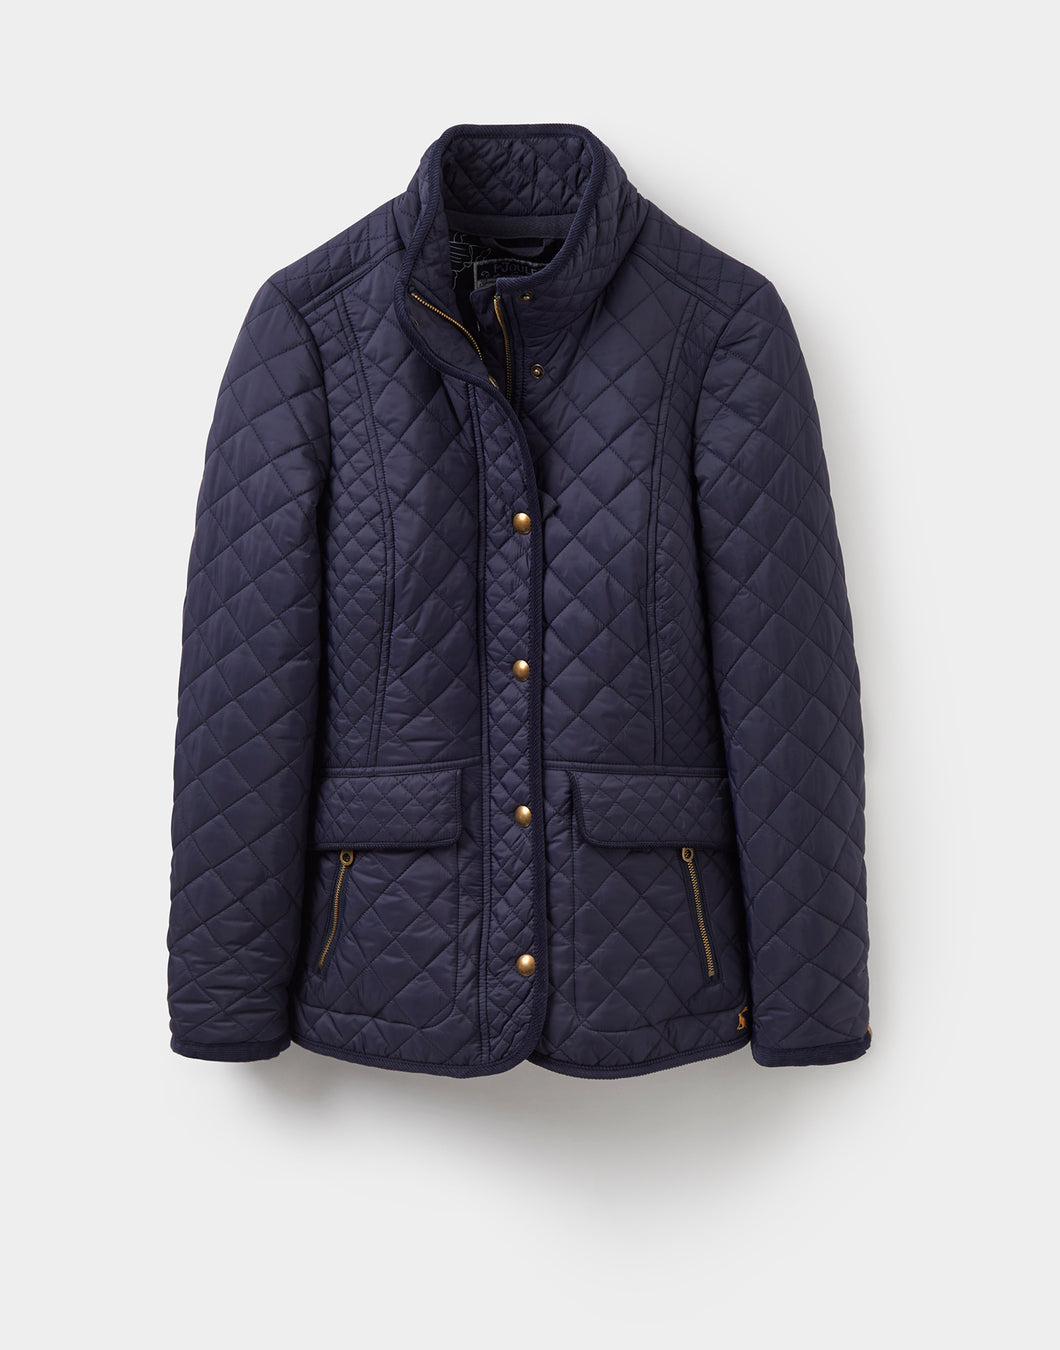 Joules Newdale Quilted Jacket - Marine Navy